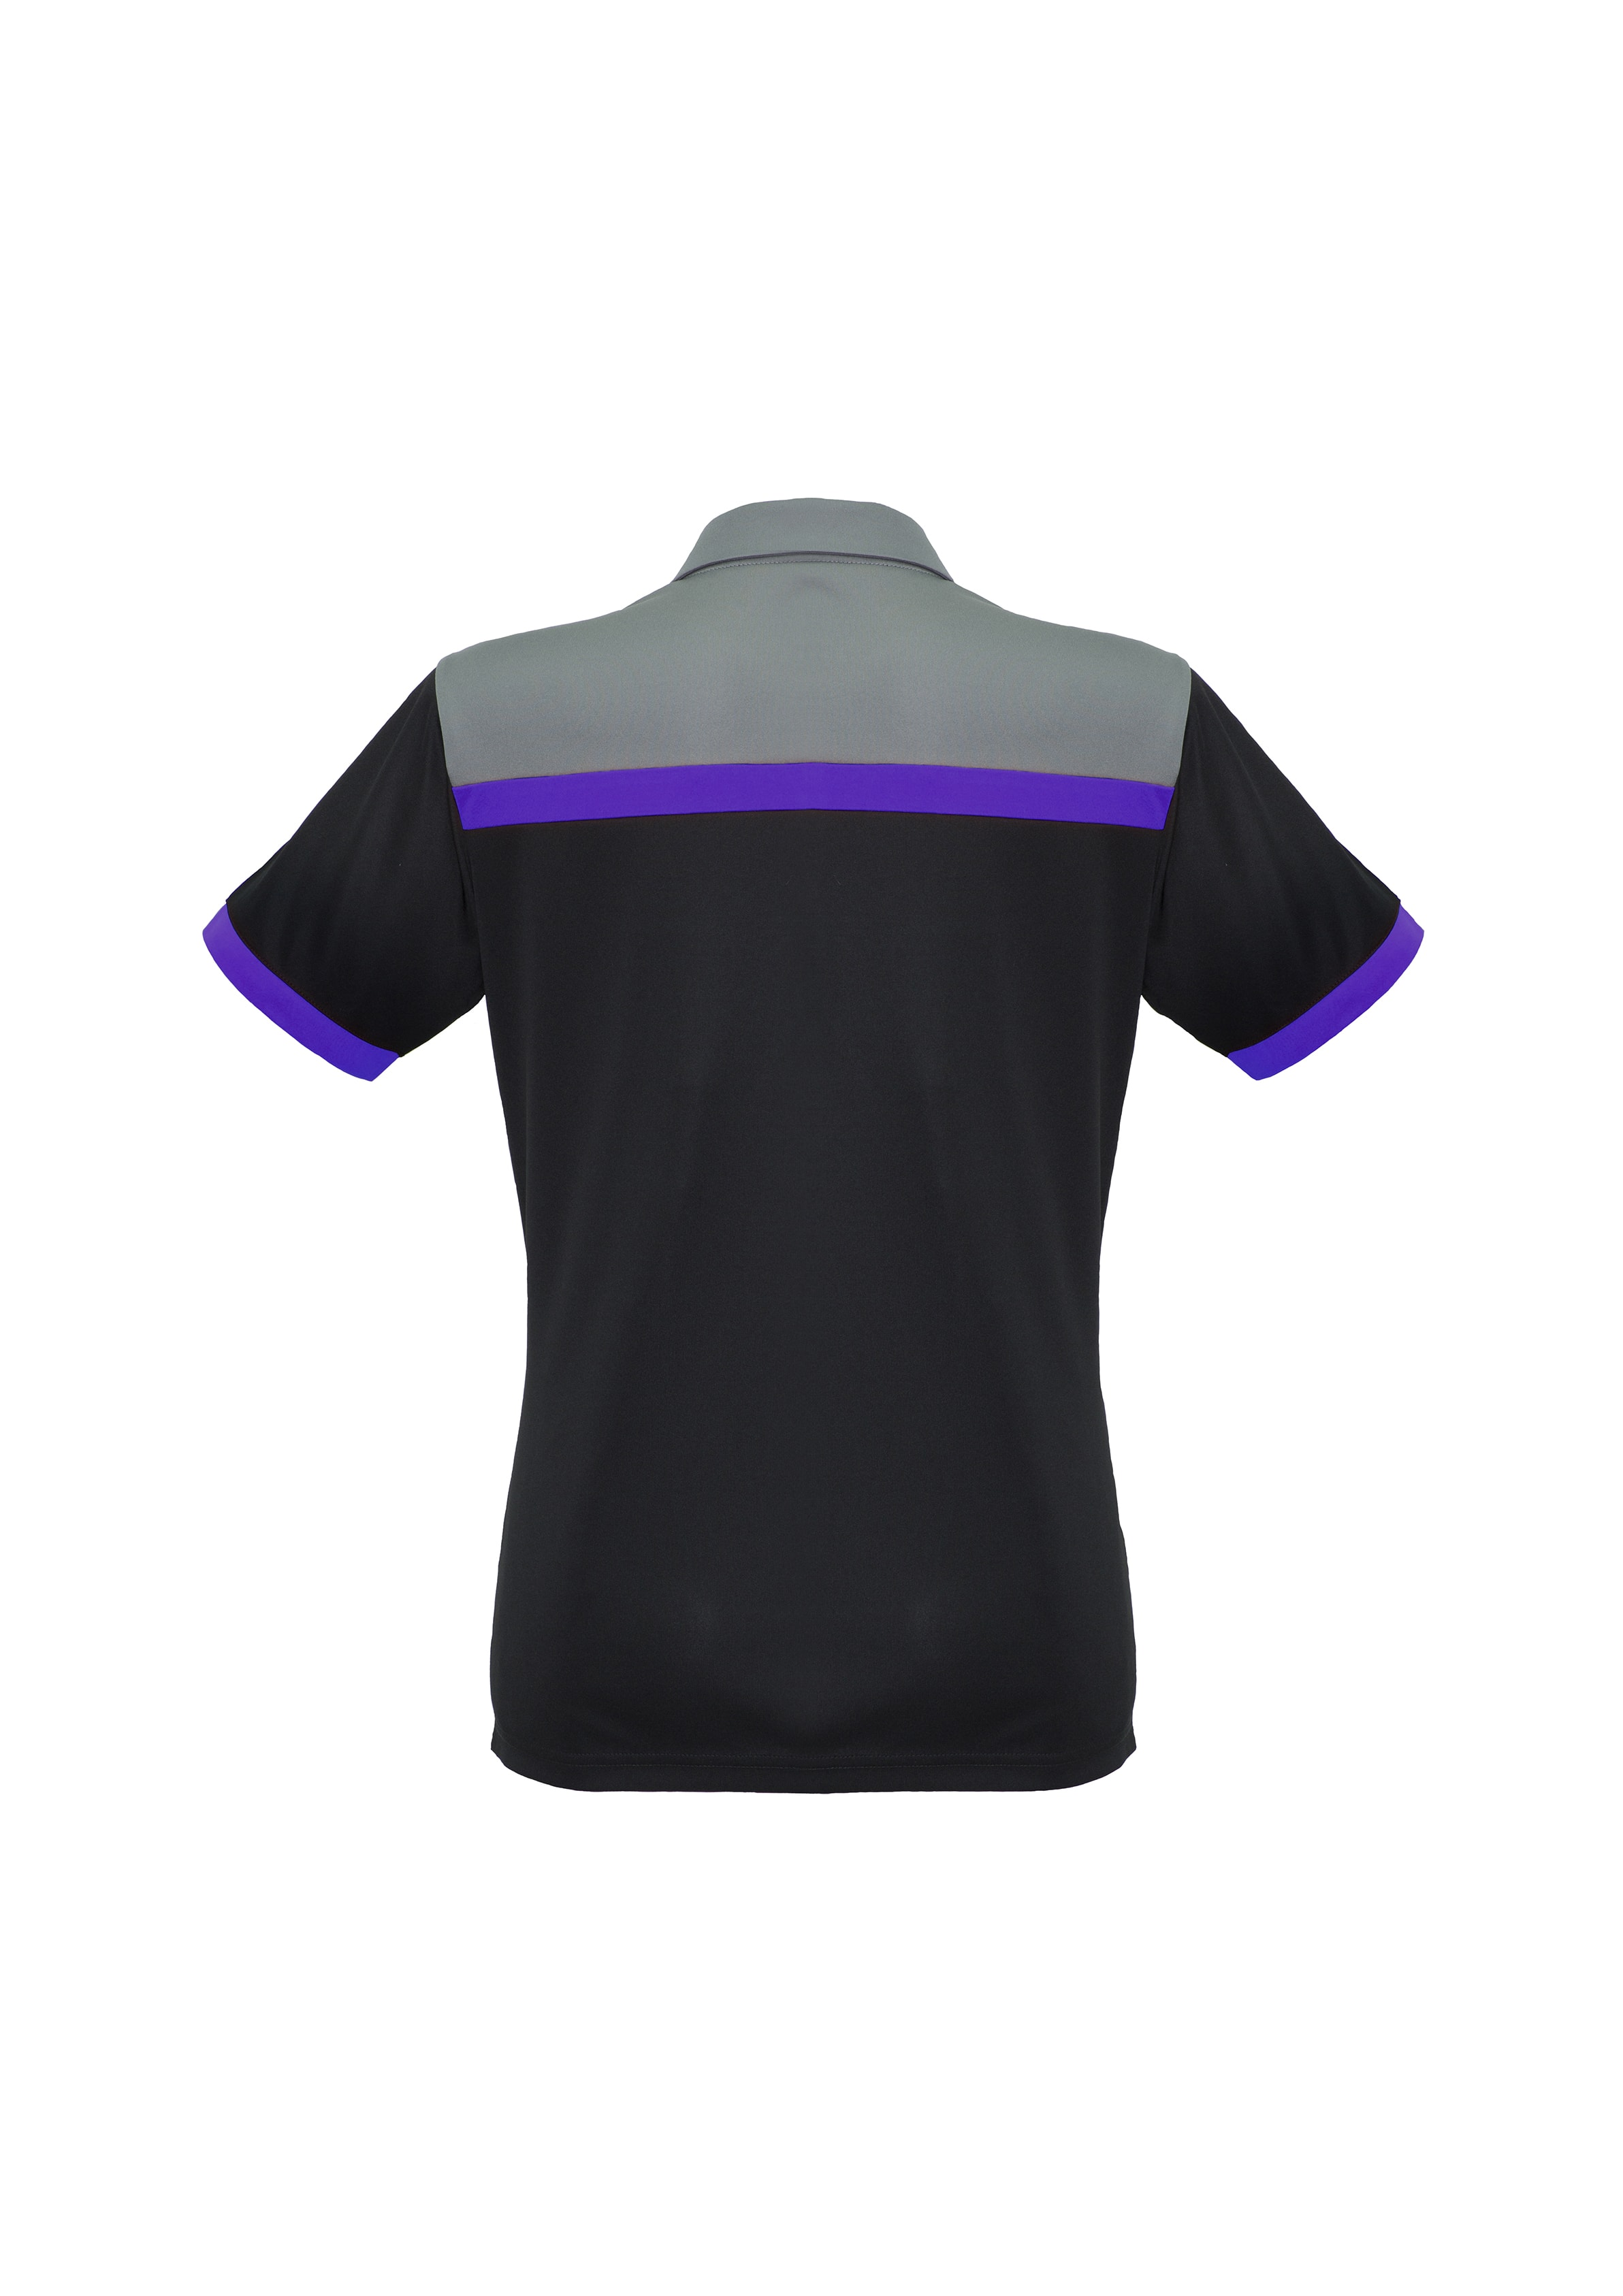 P500LS_BlackPurple_back